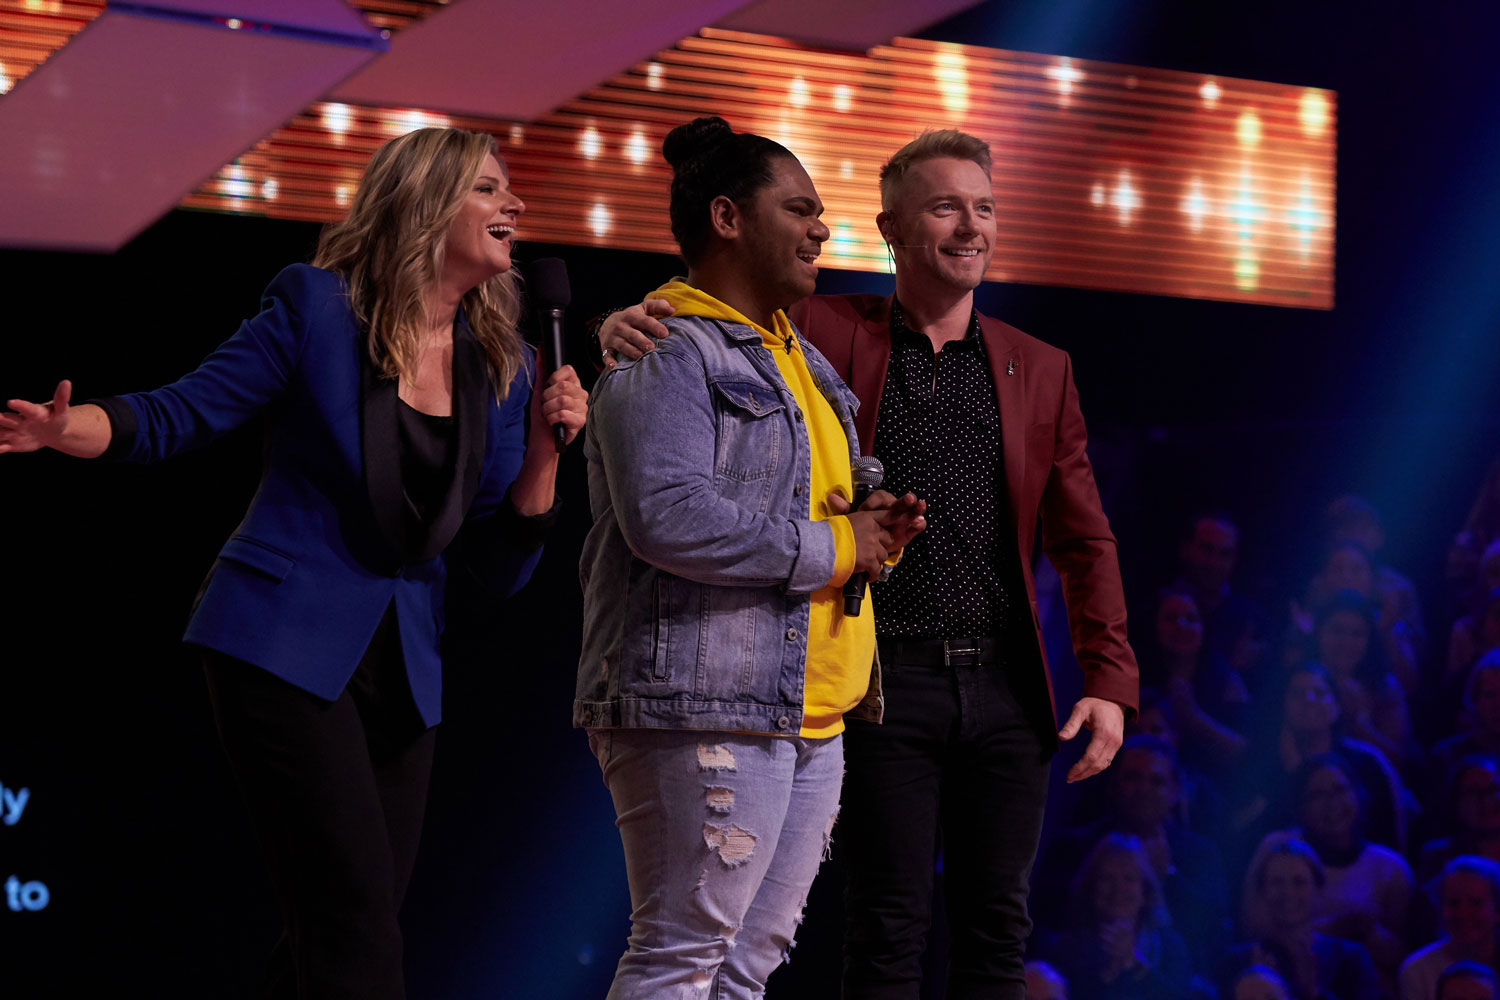 Channel 7 launches new singing competition All Together Now